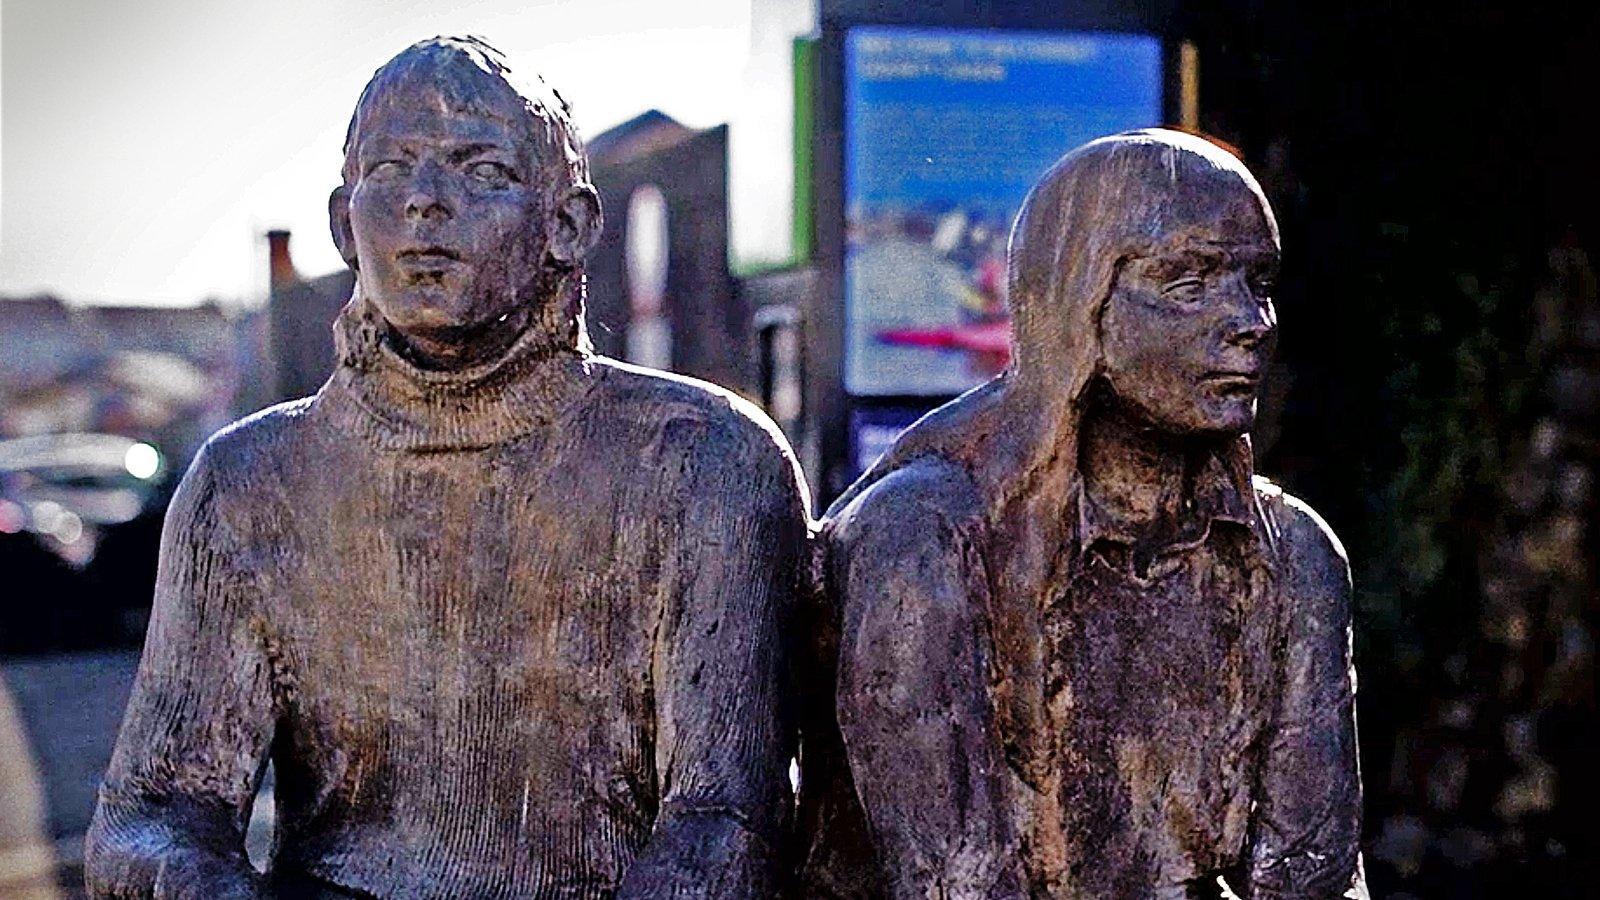 Image - The bronze sculptures of Geraldine O'Reilly and Paddy Stanley on Main Street in Belturbet